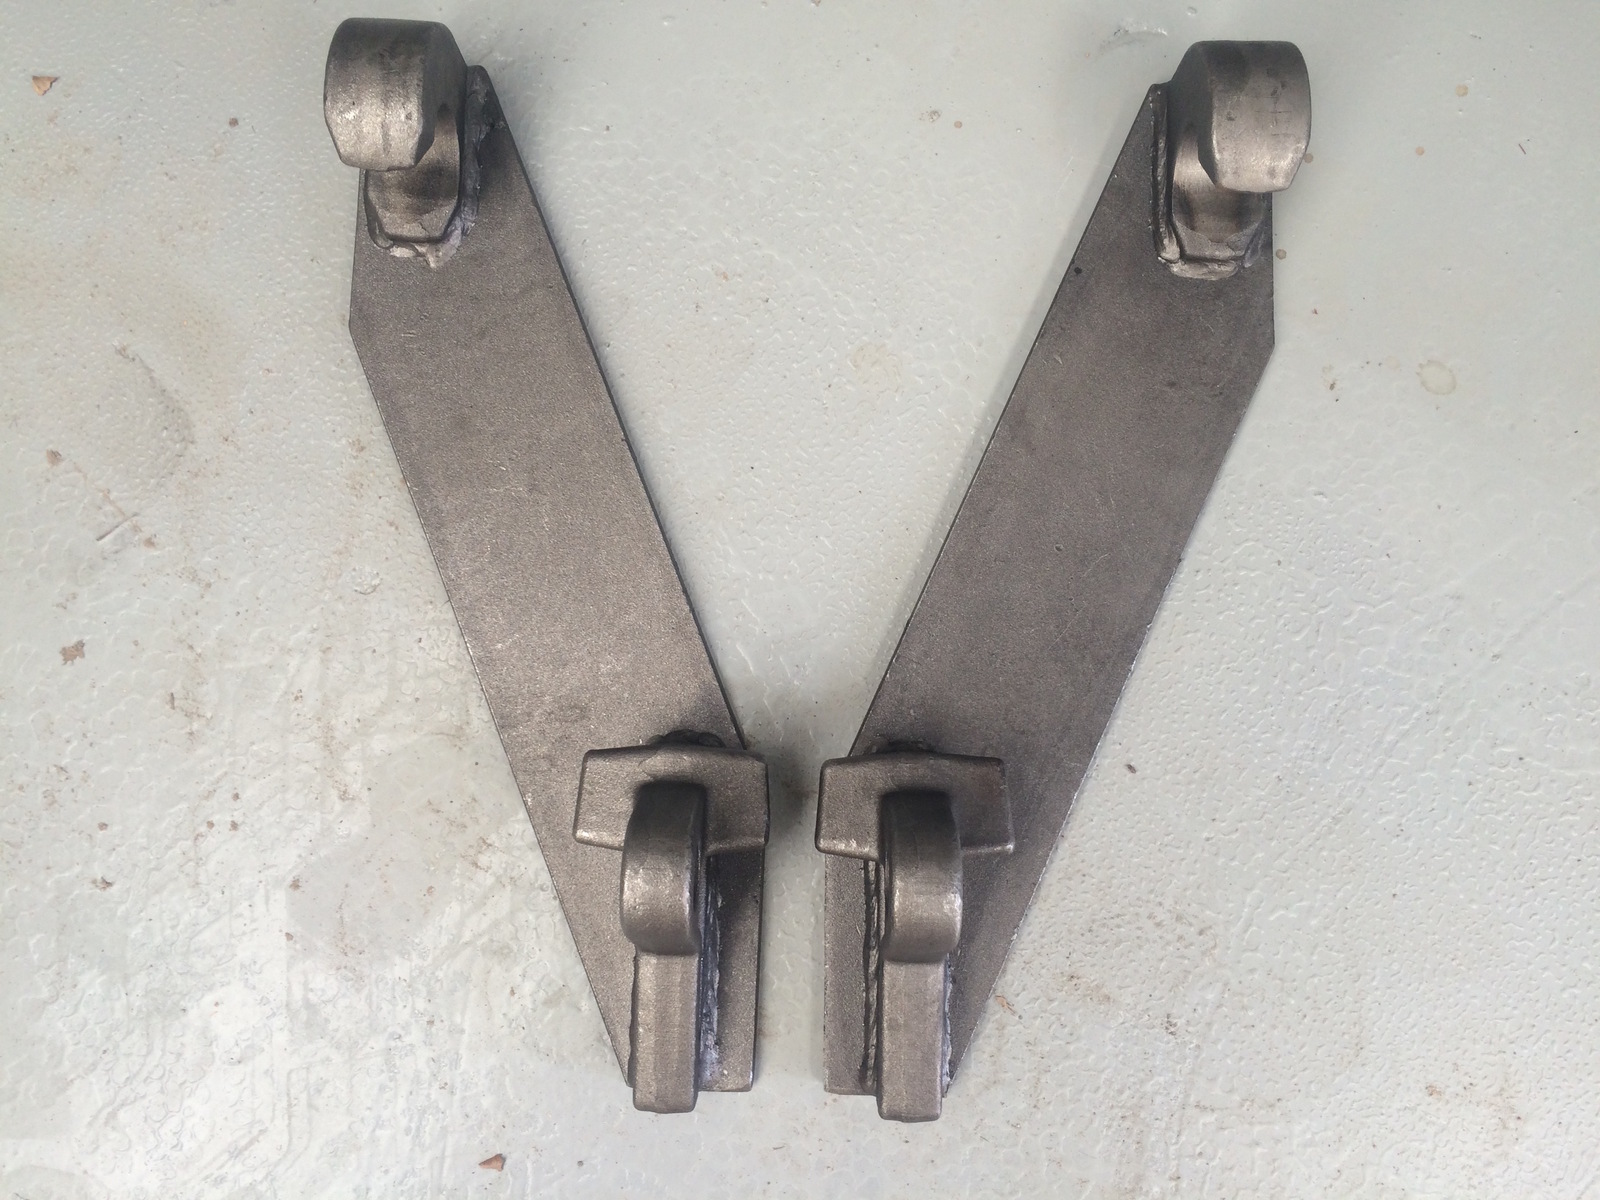 Euro hitch Weld on  attachment  mounting hooks